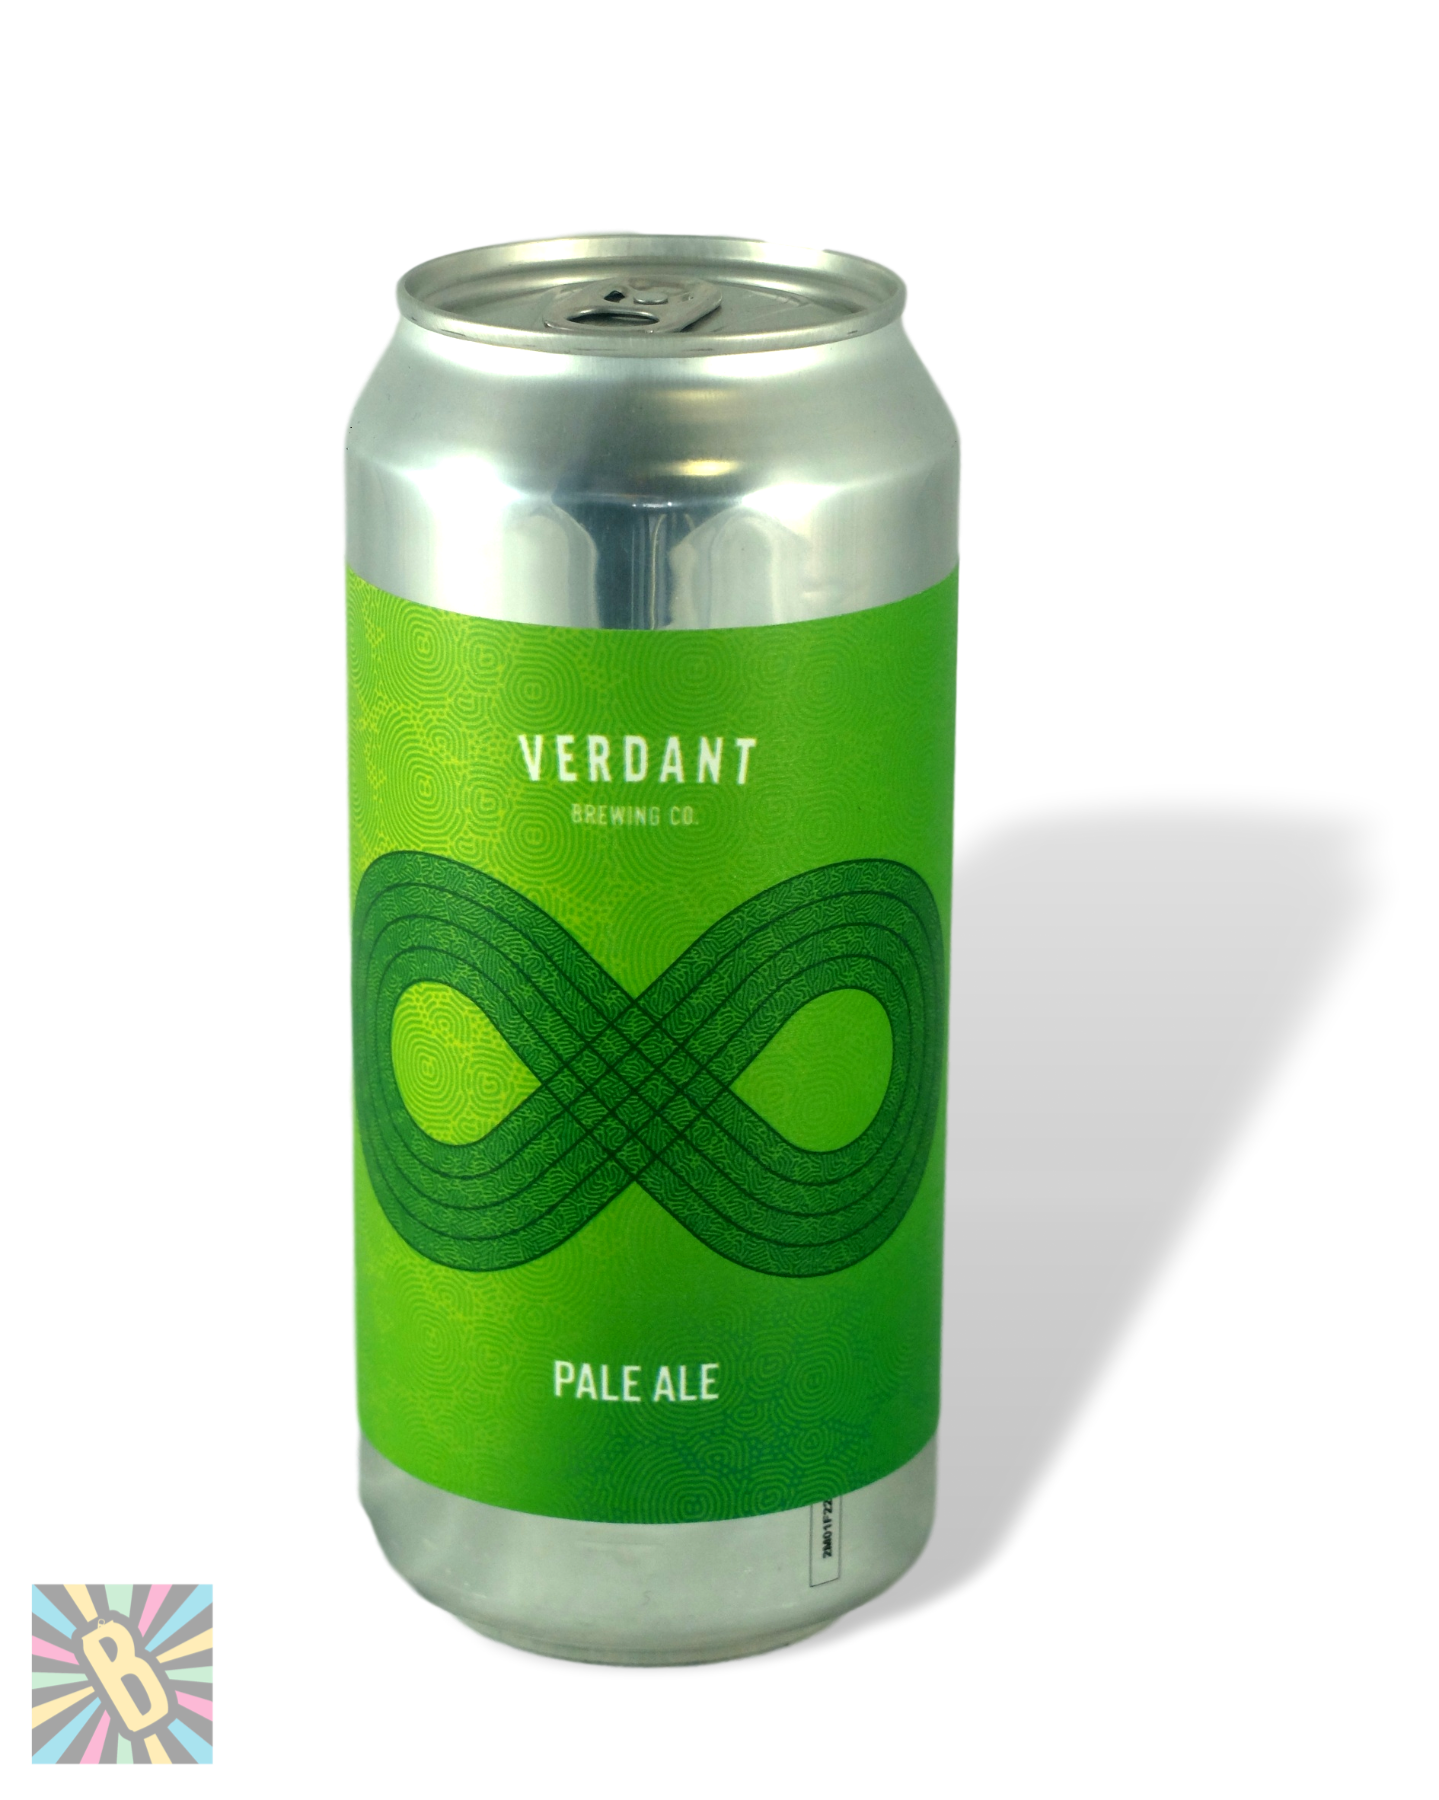 Verdant 300 Laps Of Your Garden 44cl